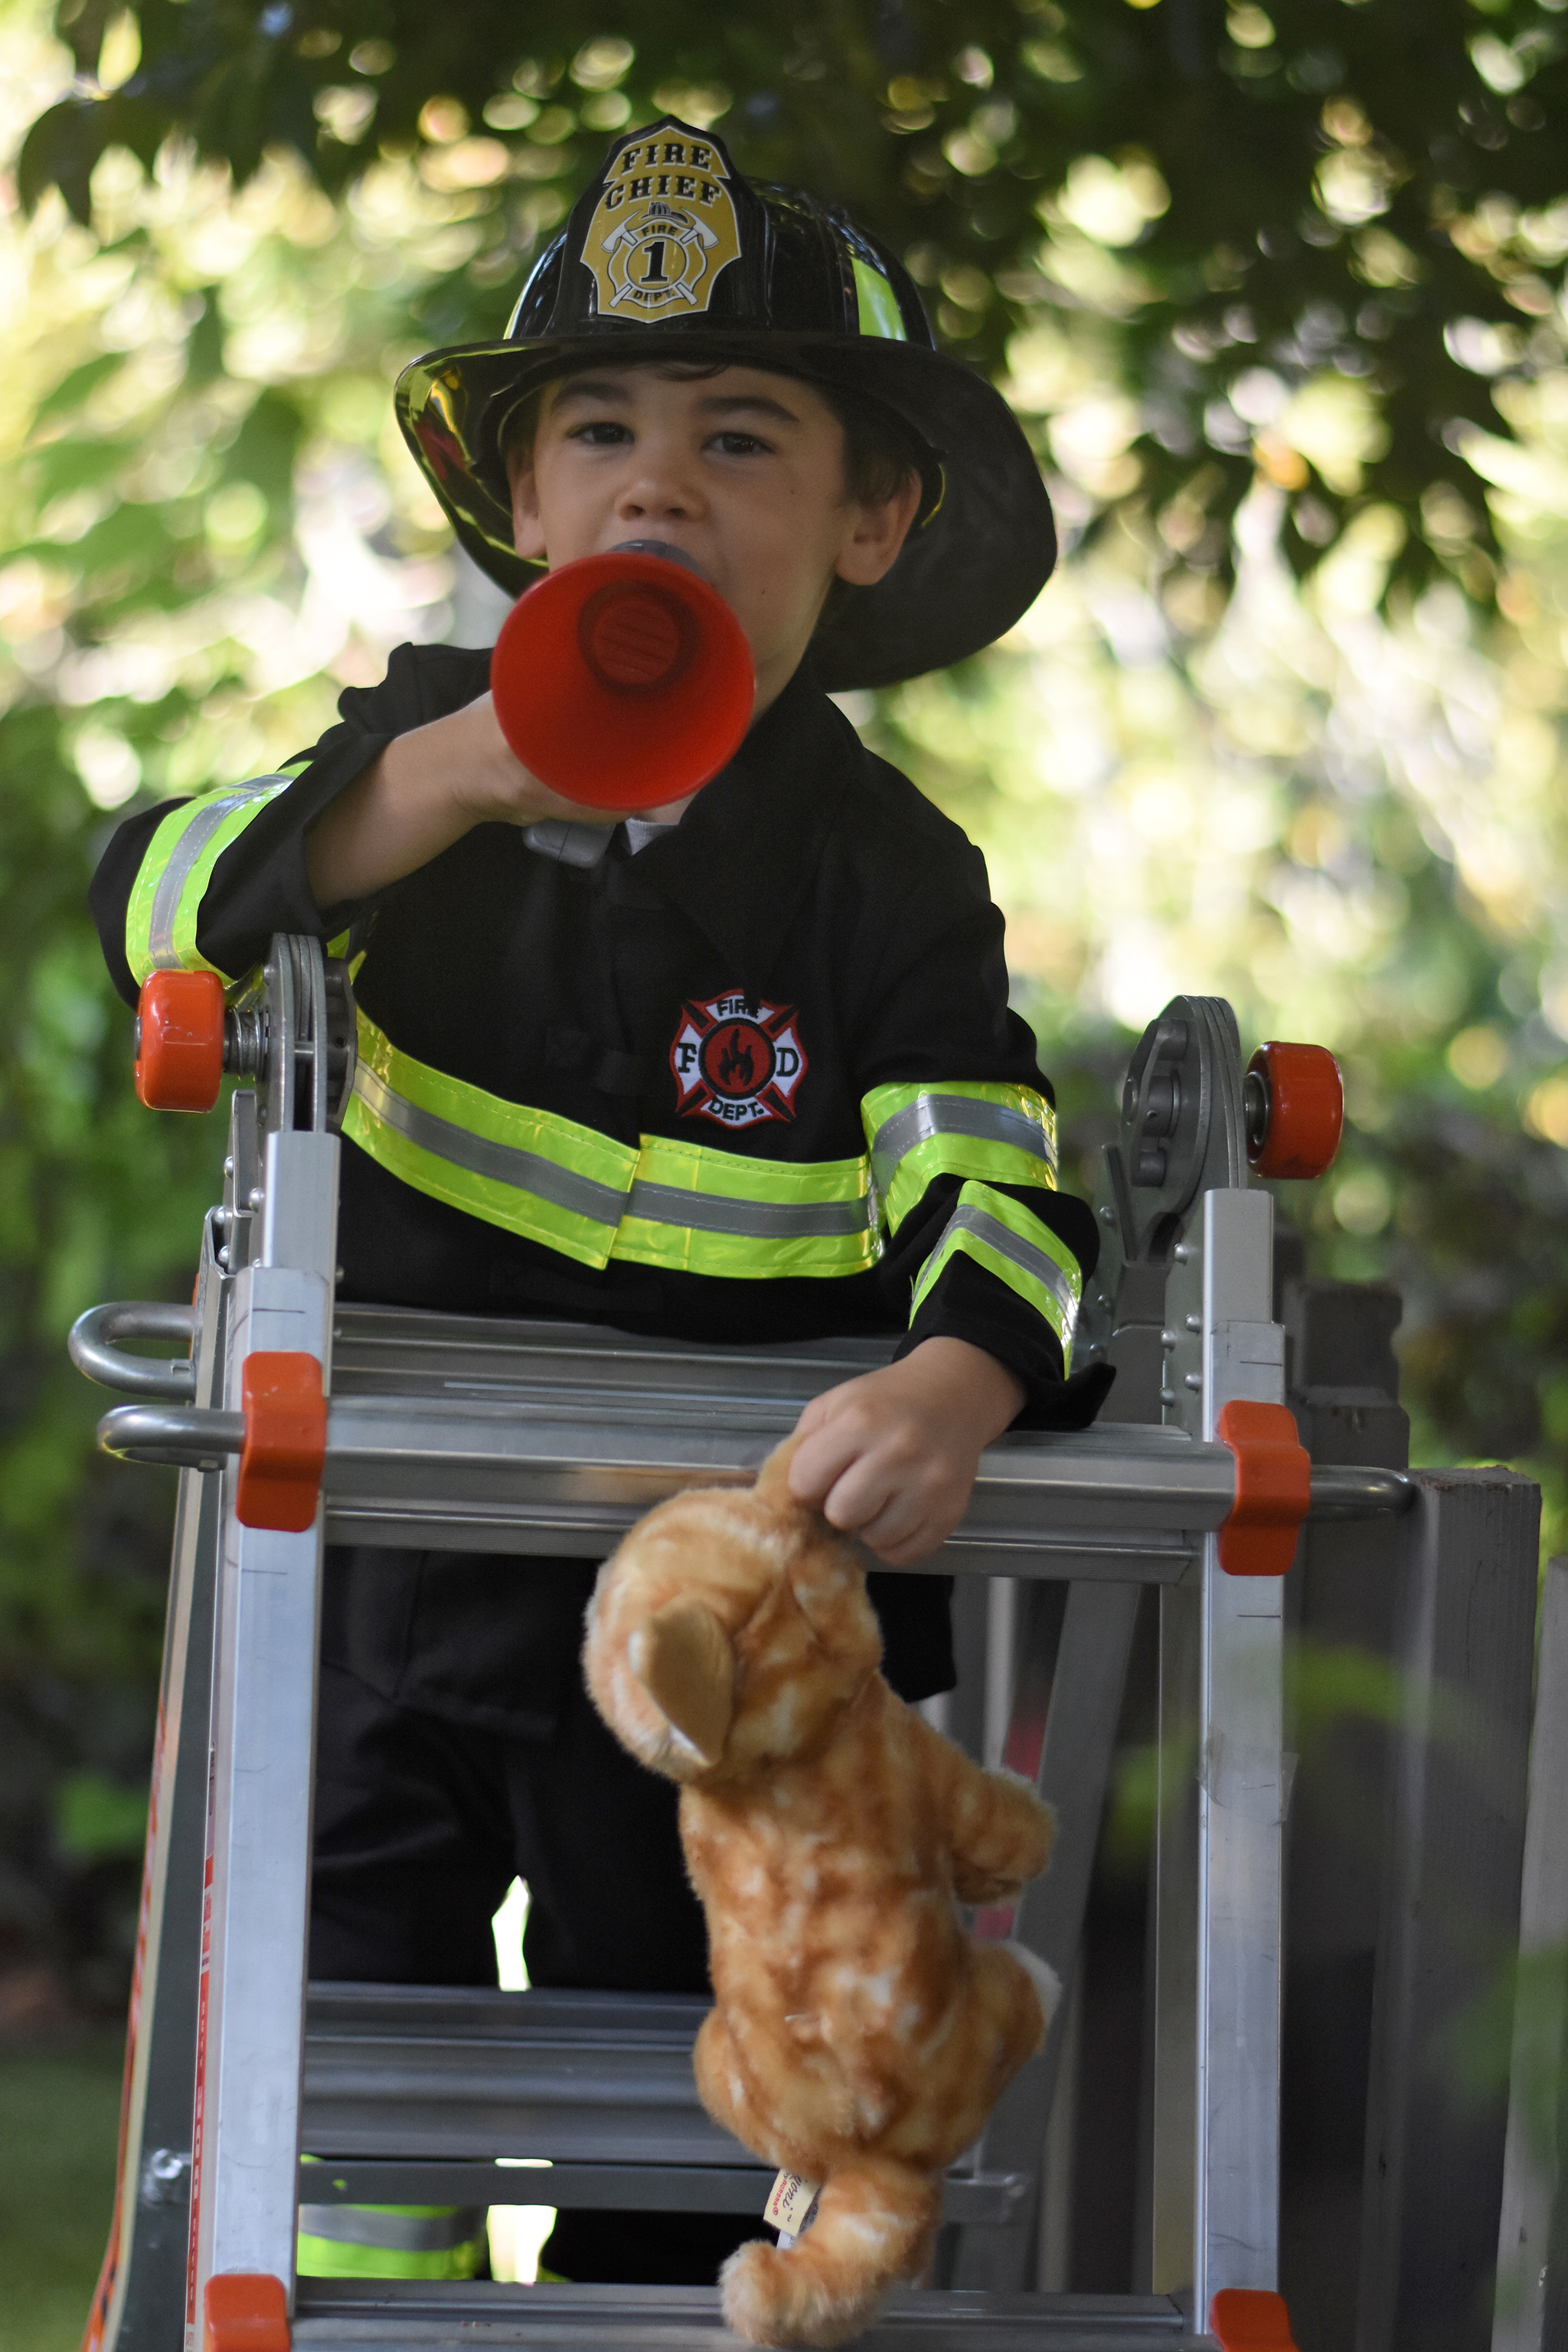 Congratulations! You completed the Firefighter Training Course and saved the kitty!